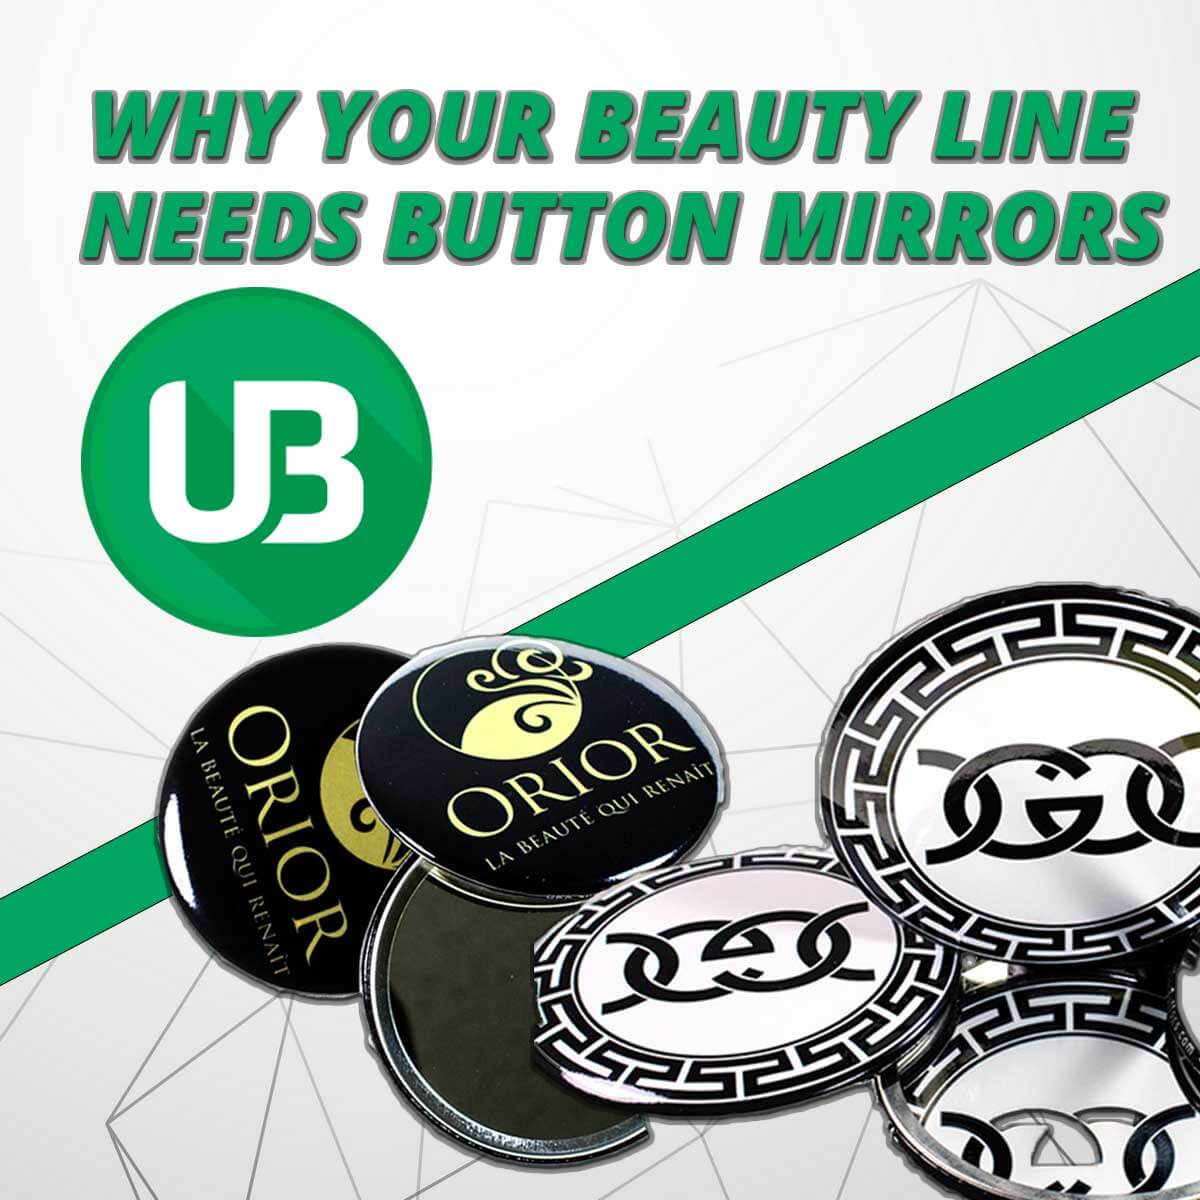 Why Your Beauty Line Needs Button Mirrors